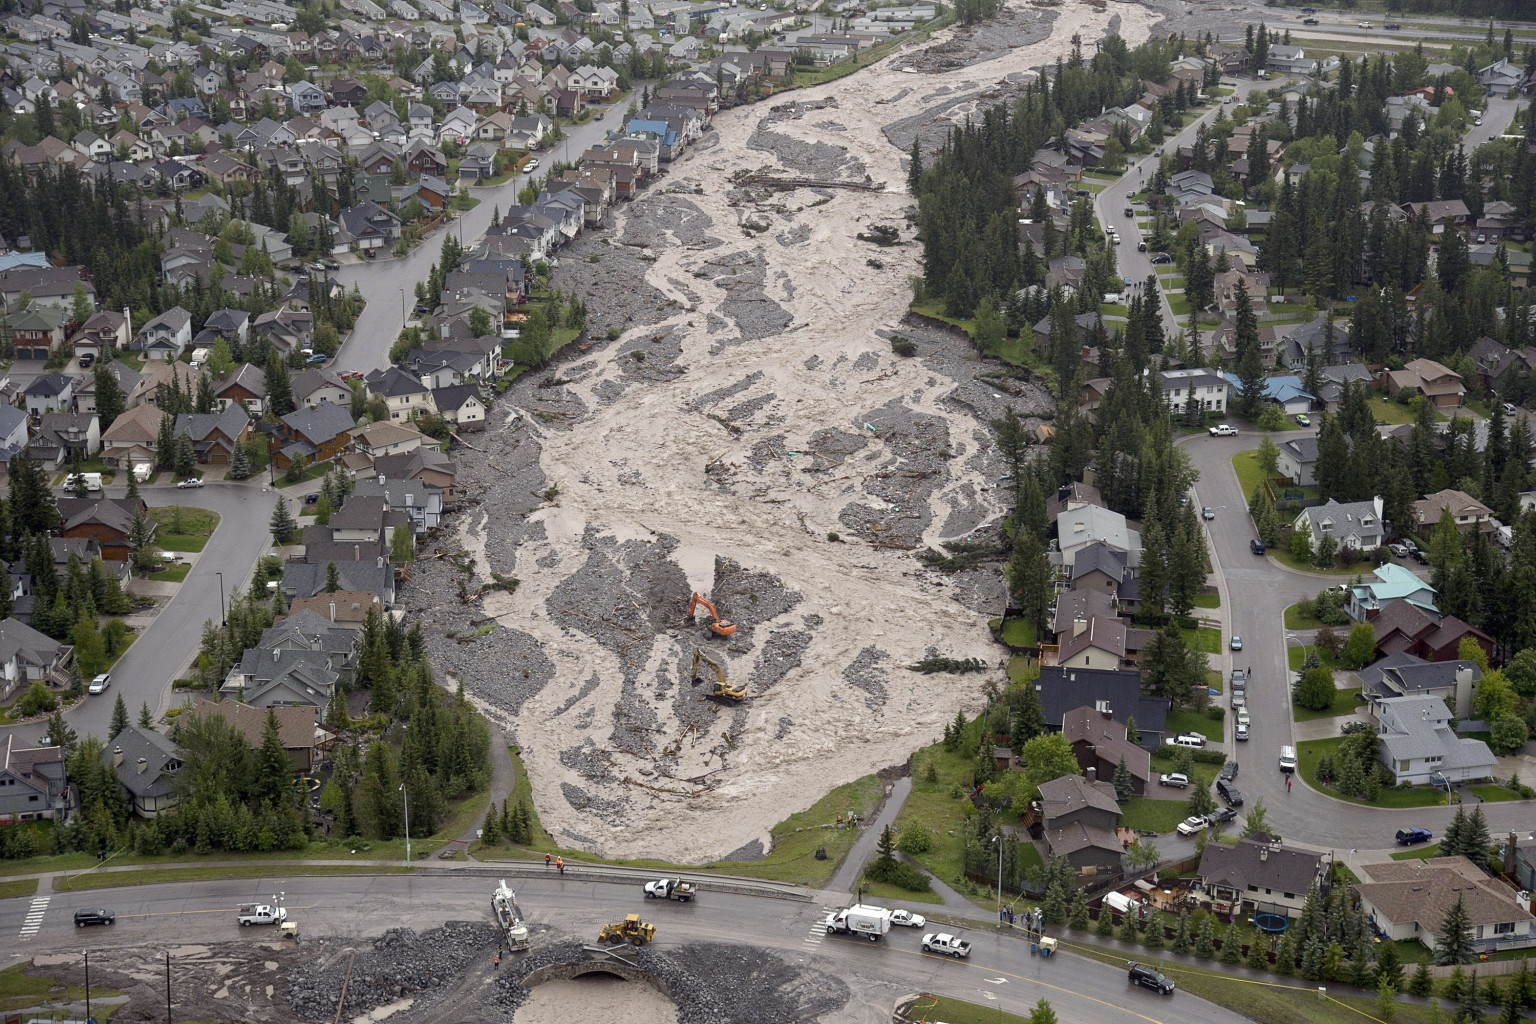 Figure 2.  Cougar Creek following June 2013 flood event. (Photo credit: The Canadian Press, Jonathan Hayward)